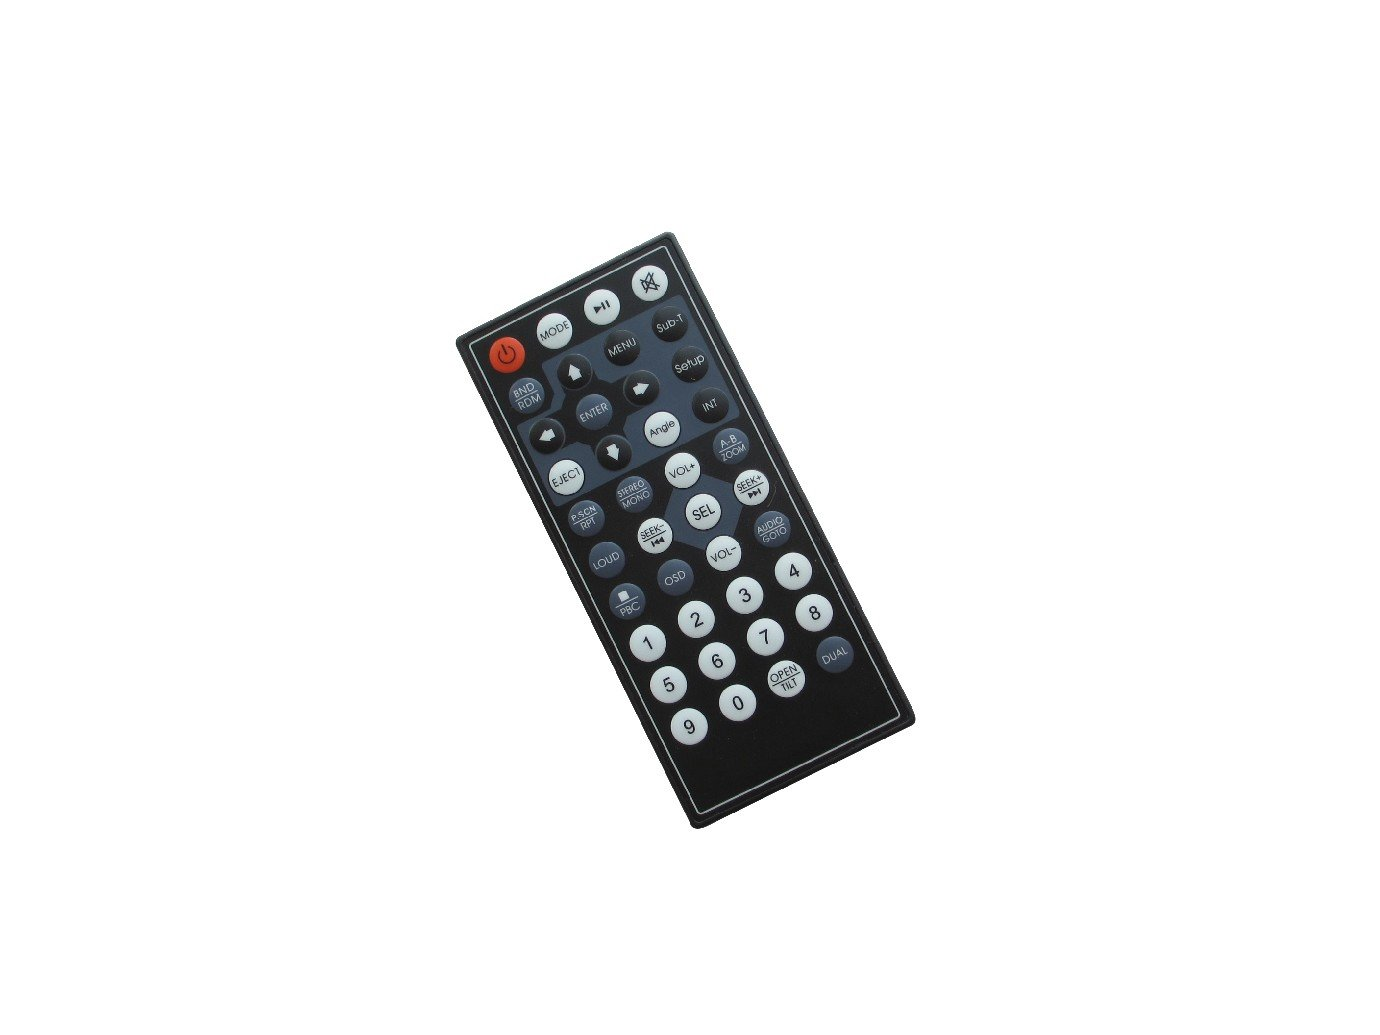 Hotsmtbang Replacement Remote Control For Power Acoustik PD-651B PD-712B PD-710T PD-651 PD-712T DVD CD USB TV FM MP3 Player Bluetooth Car Stereo Receiver